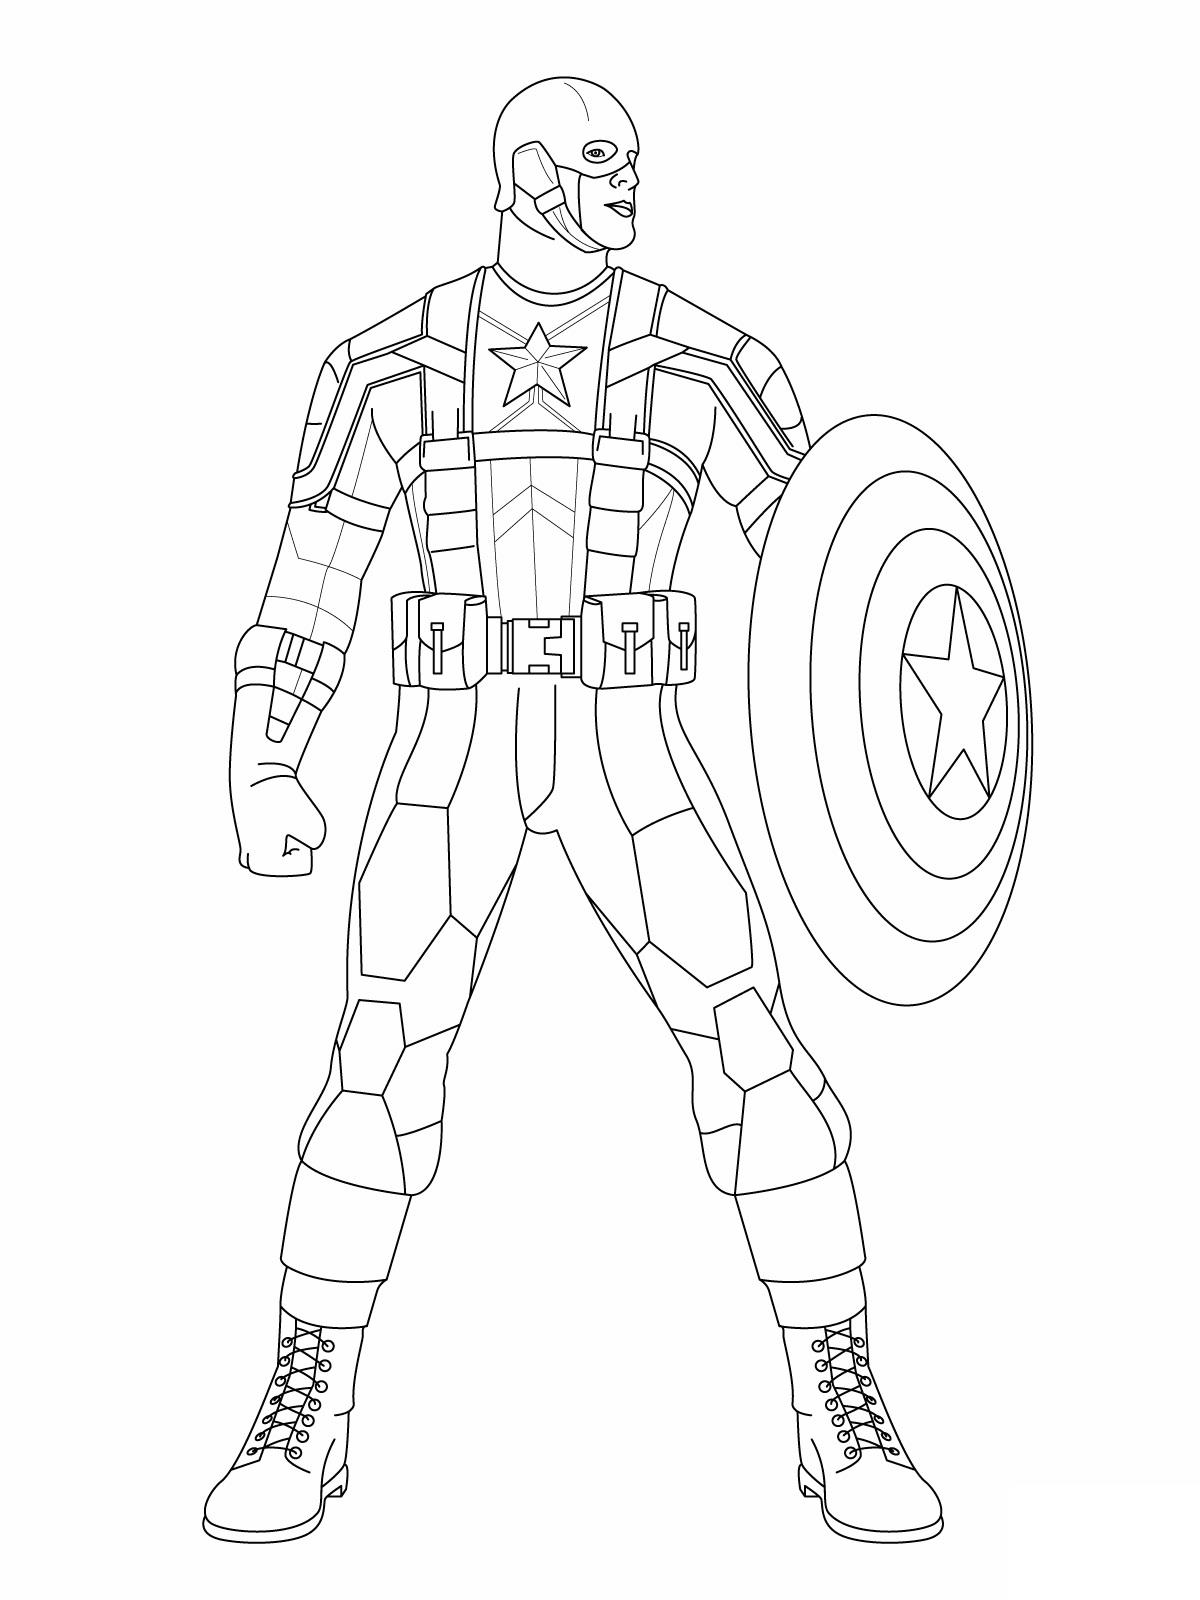 captain america coloring pages - captain america coloring pages